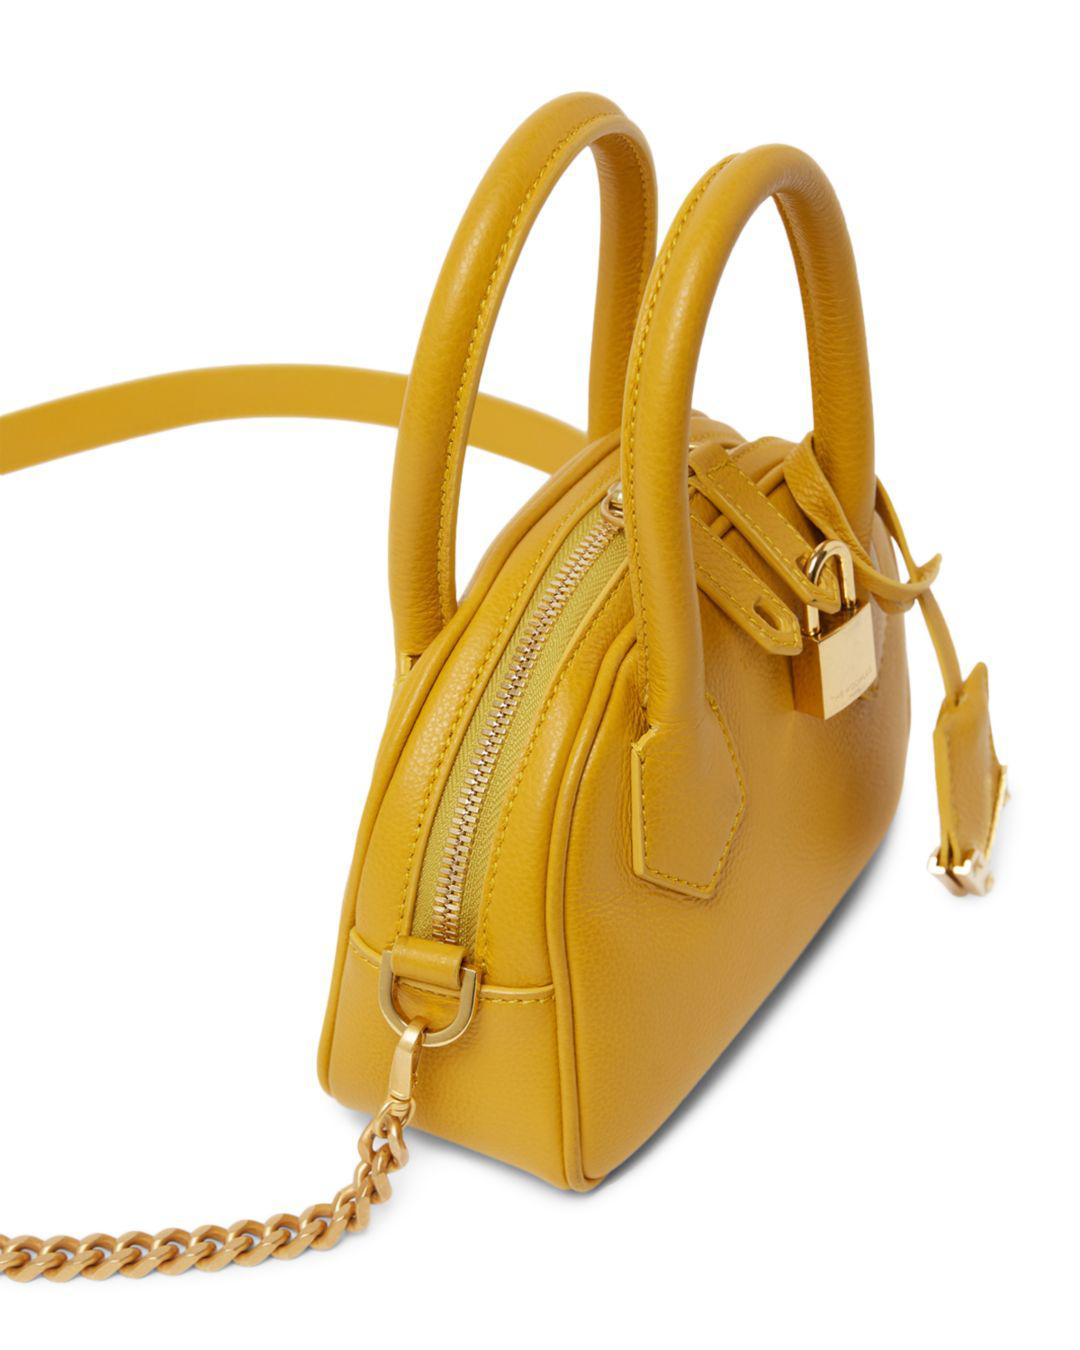 8ce986df438f The Kooples Irina Mini Leather Crossbody Bag in Yellow - Lyst